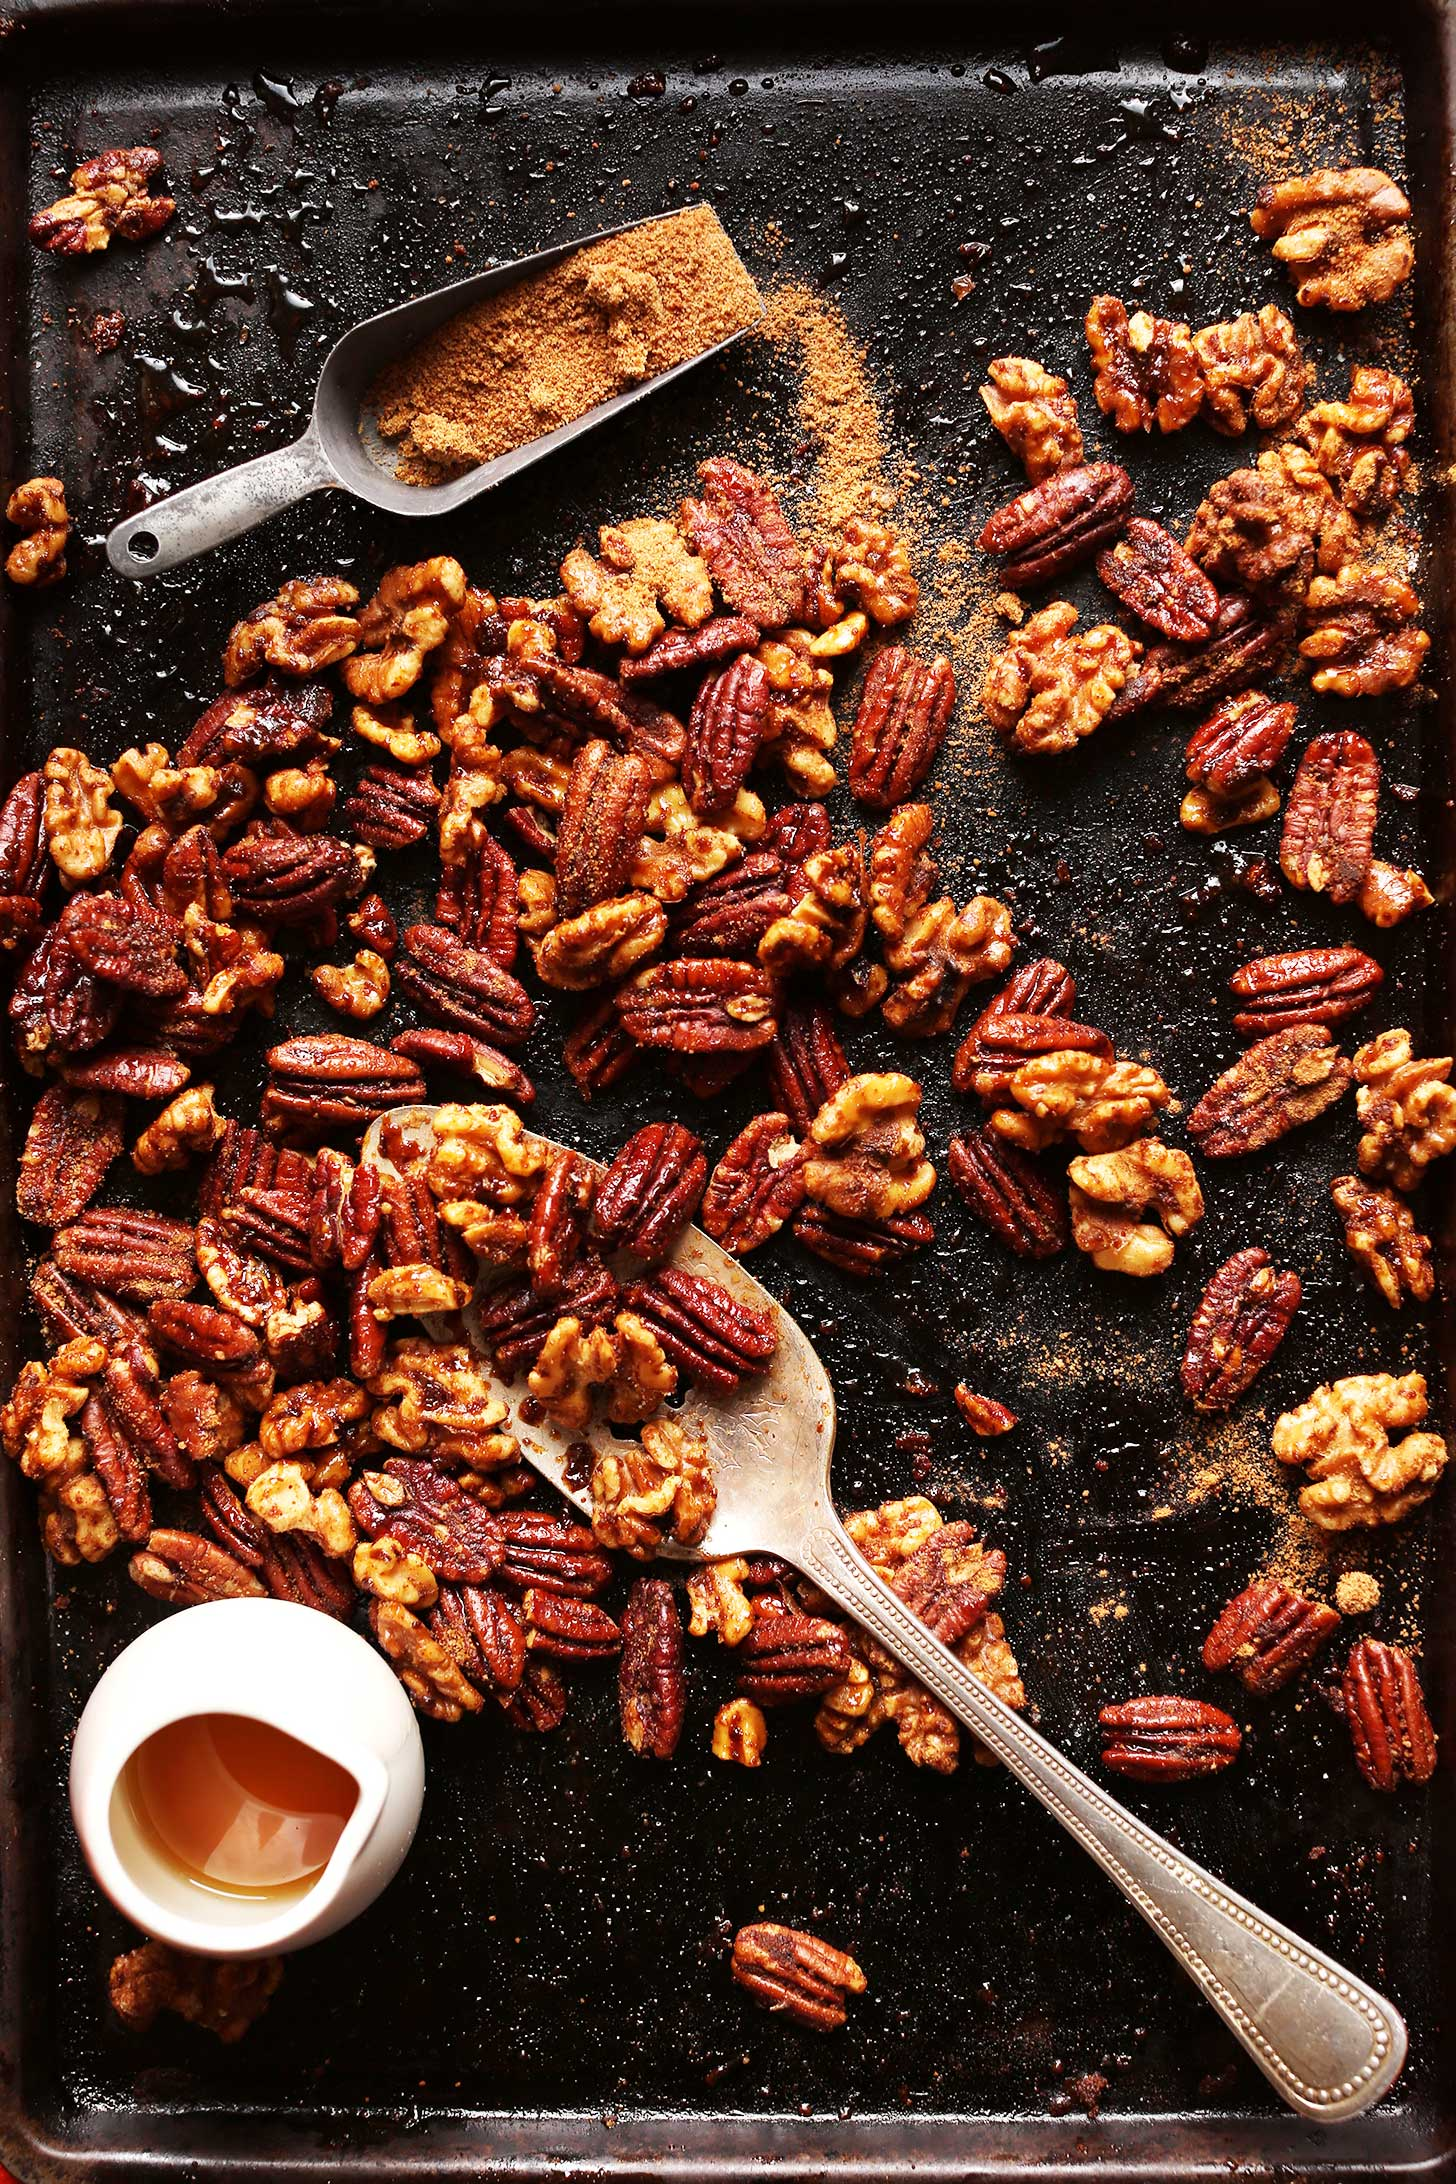 Simple and delicious candied roasted nuts on a baking sheet